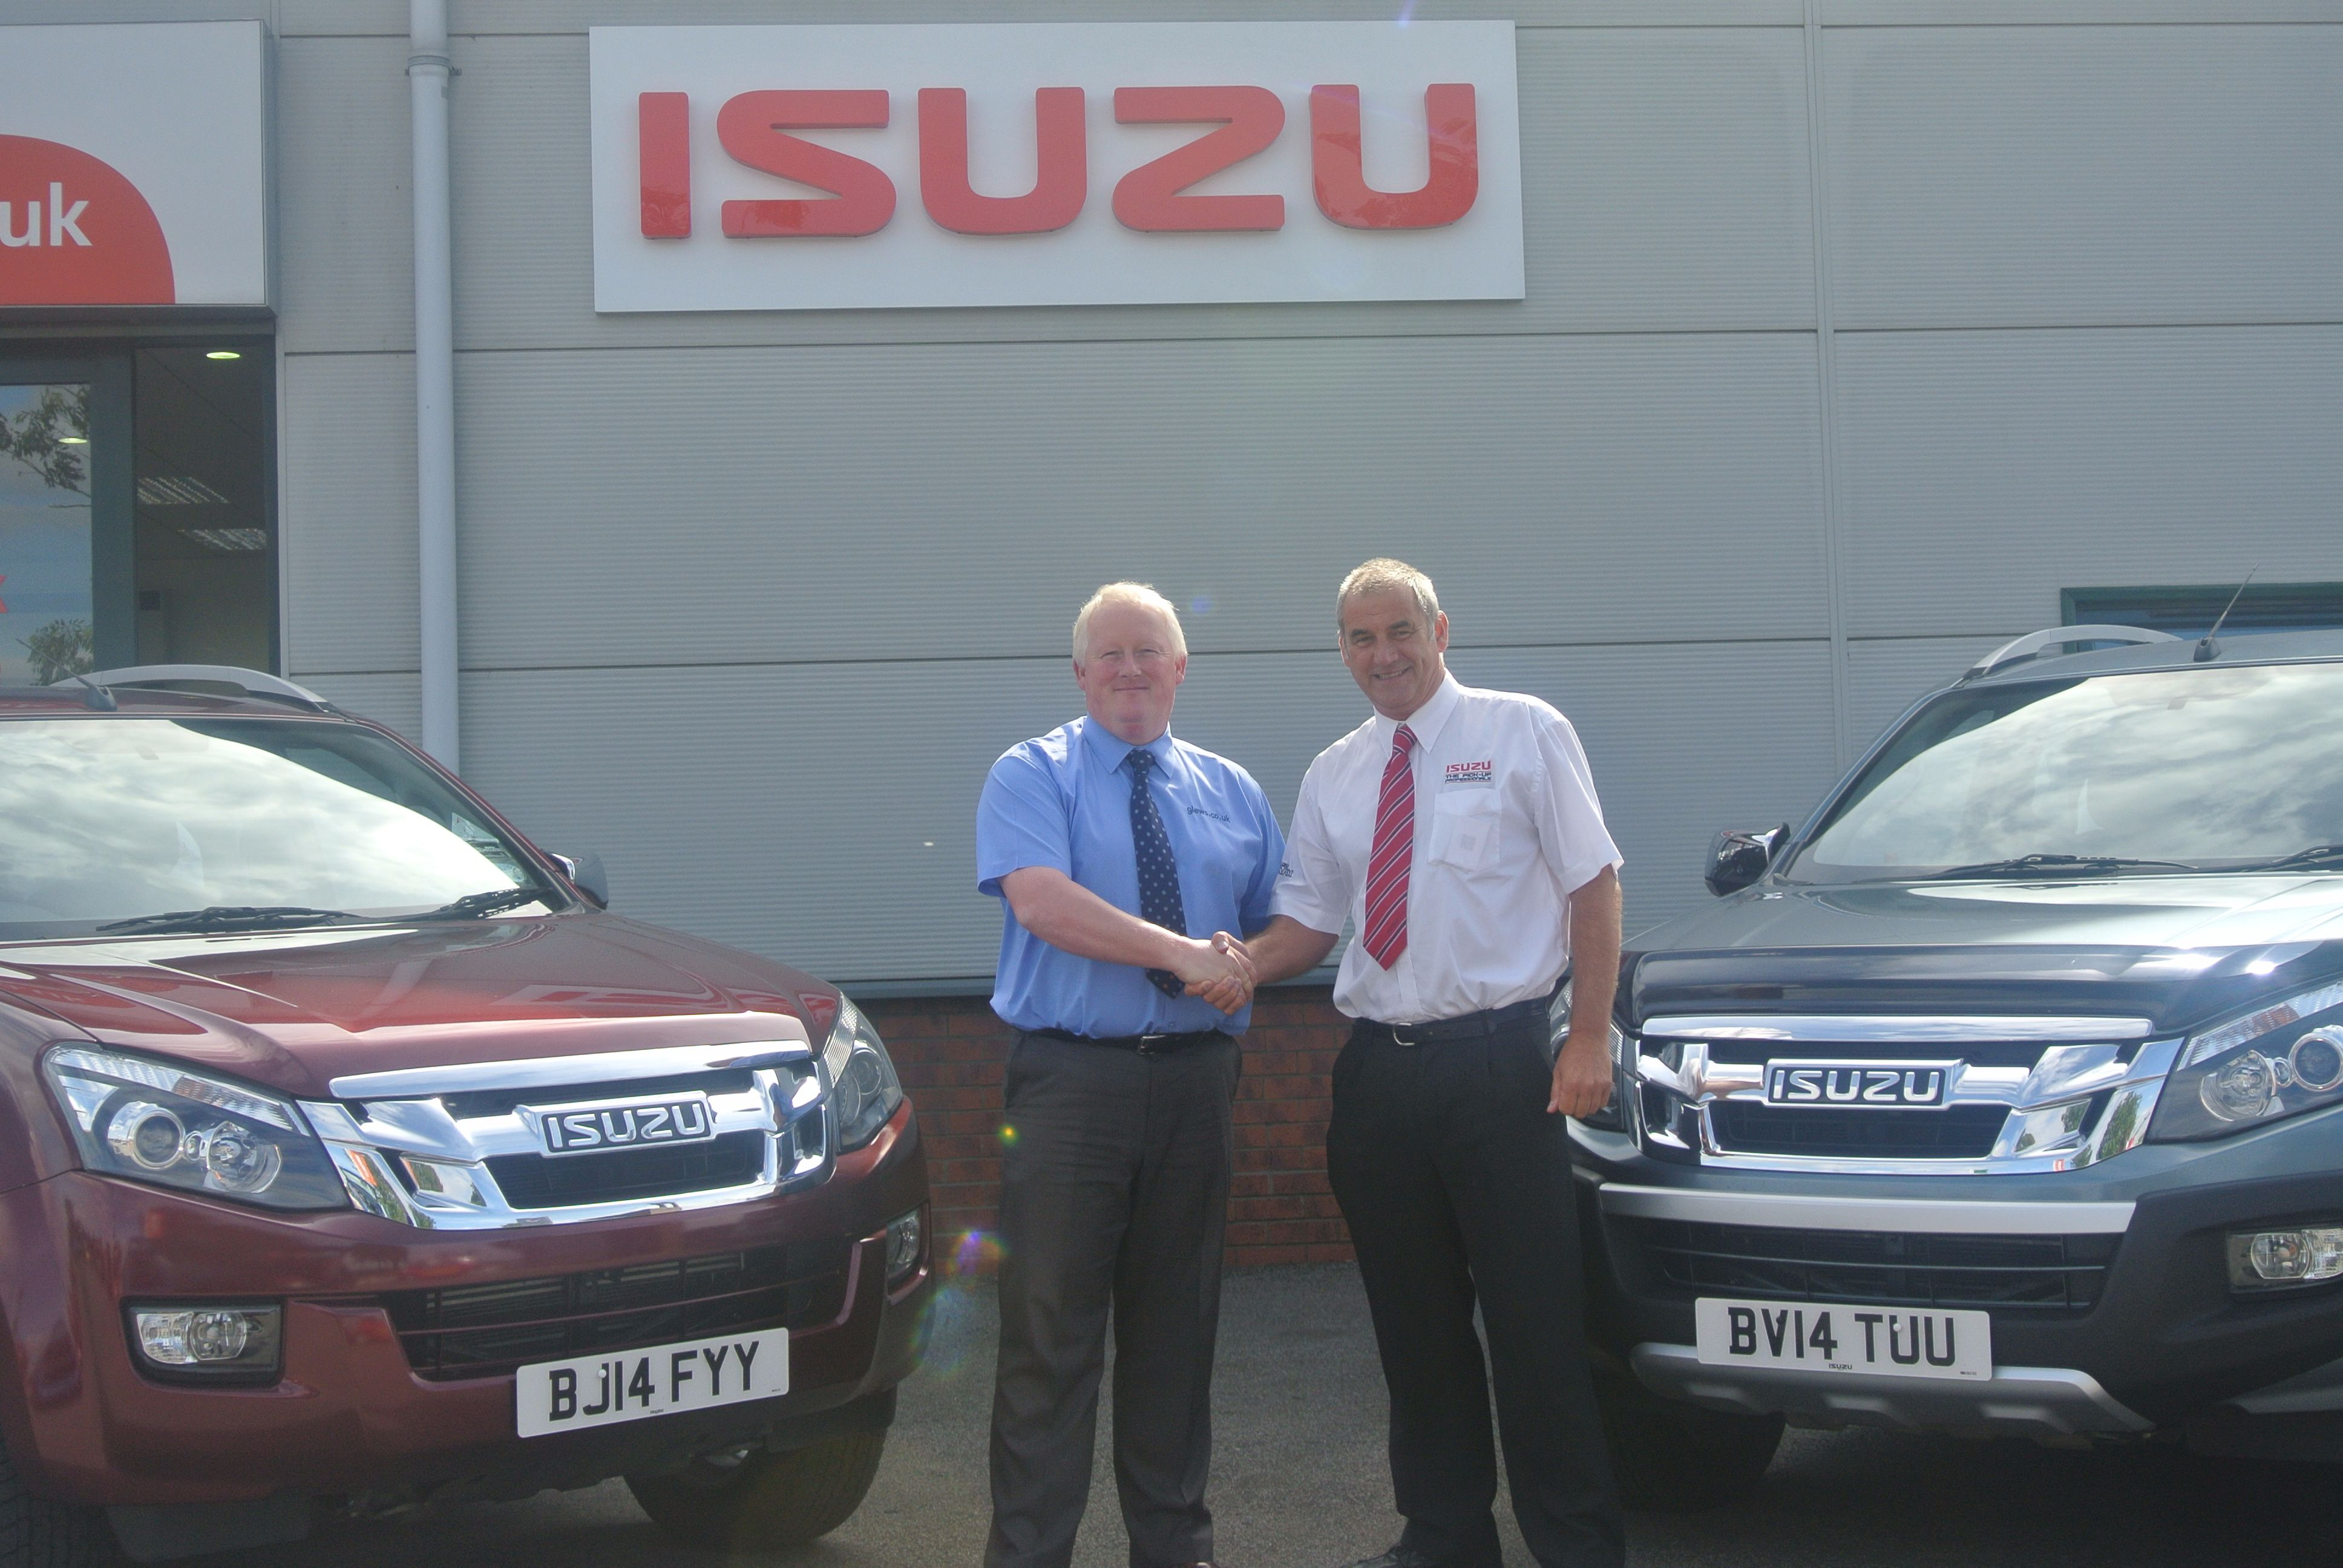 It is all about Customer Service for Glews Garage Isuzu in Yorkshire